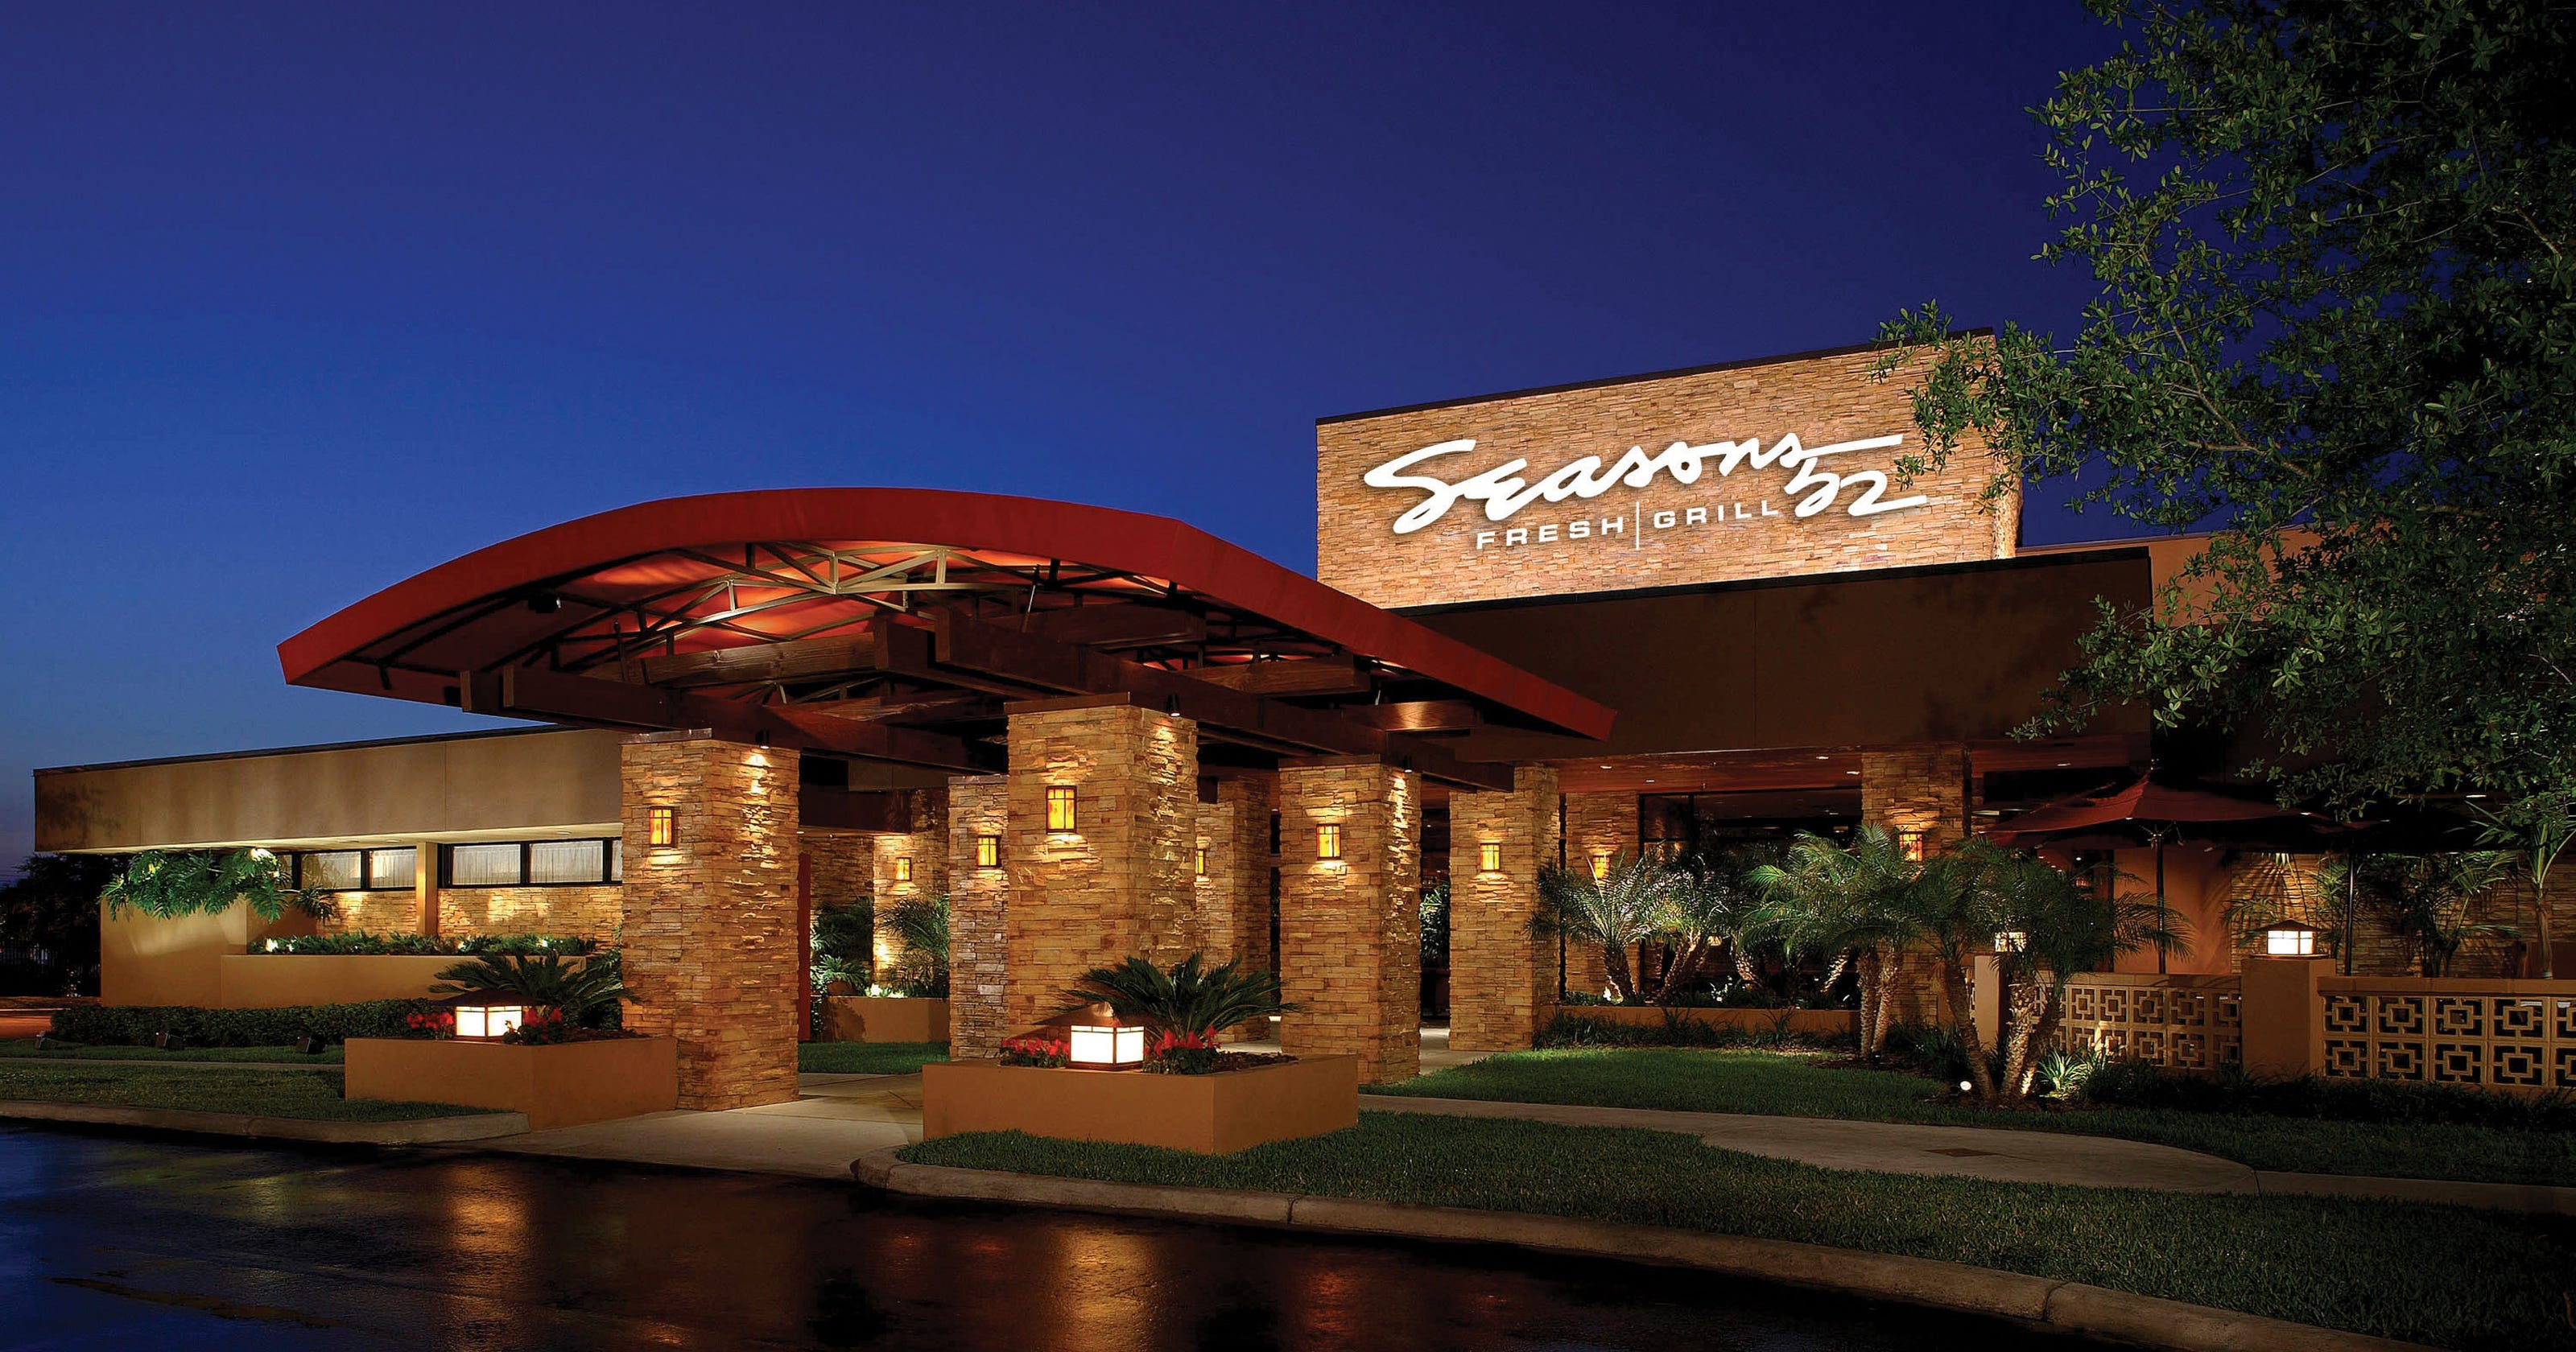 Seasons 52 restaurant to open michigan location in troy for Sports bars palm beach gardens